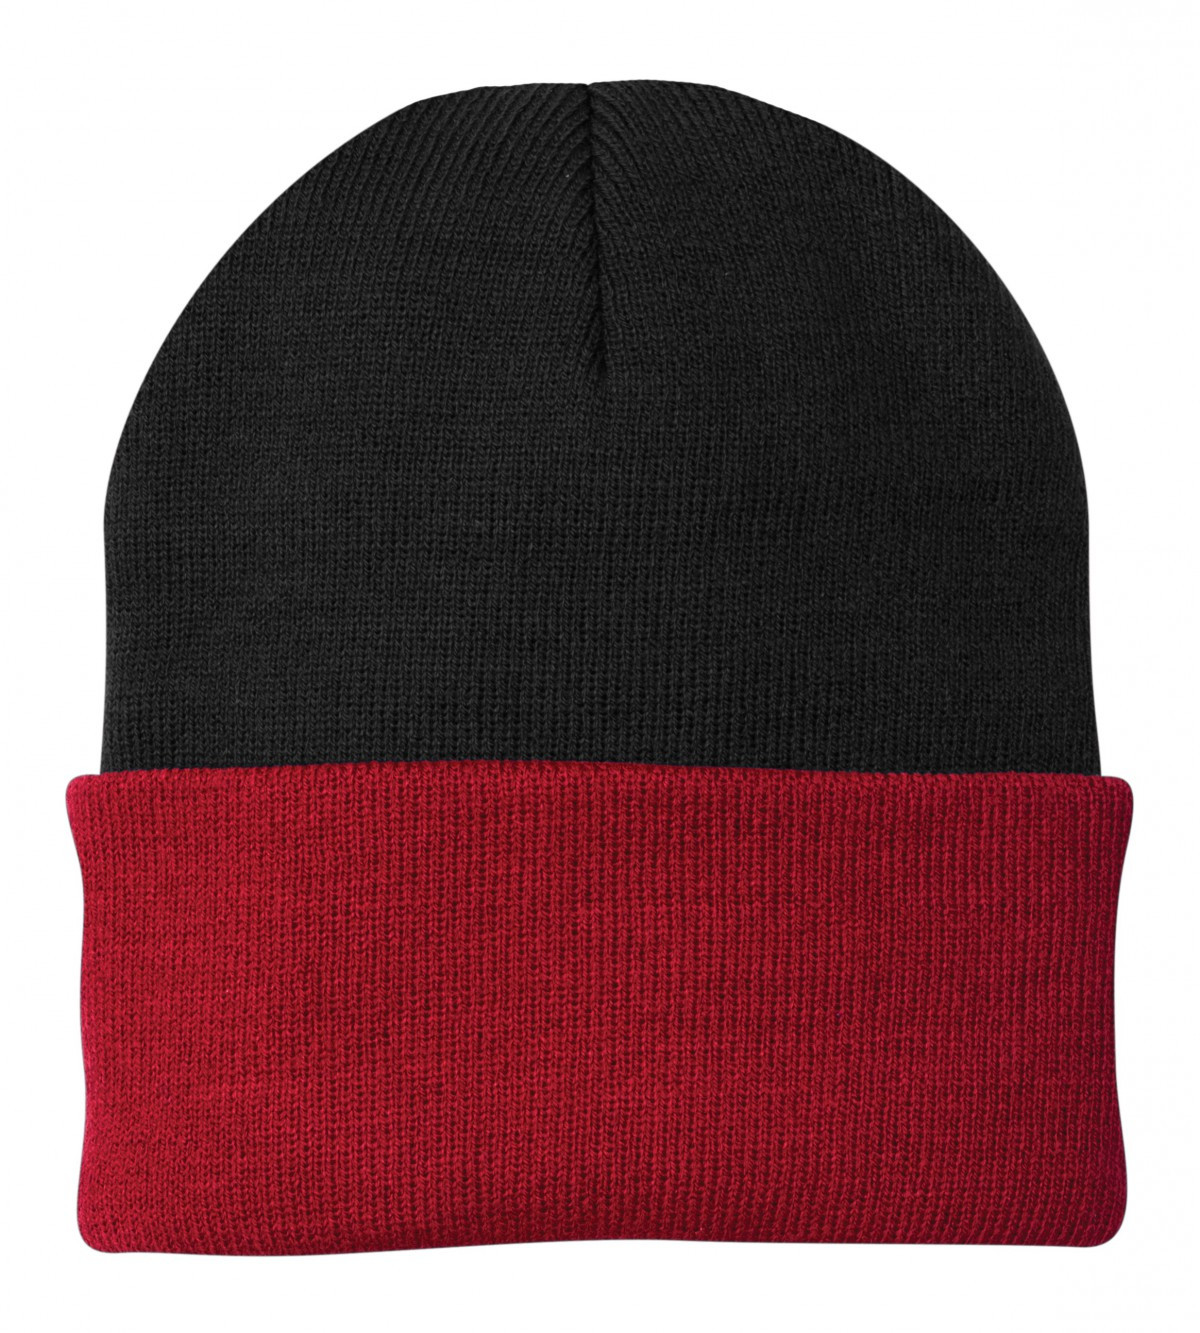 Knit Stocking Cap from Sporty s Pilot Shop